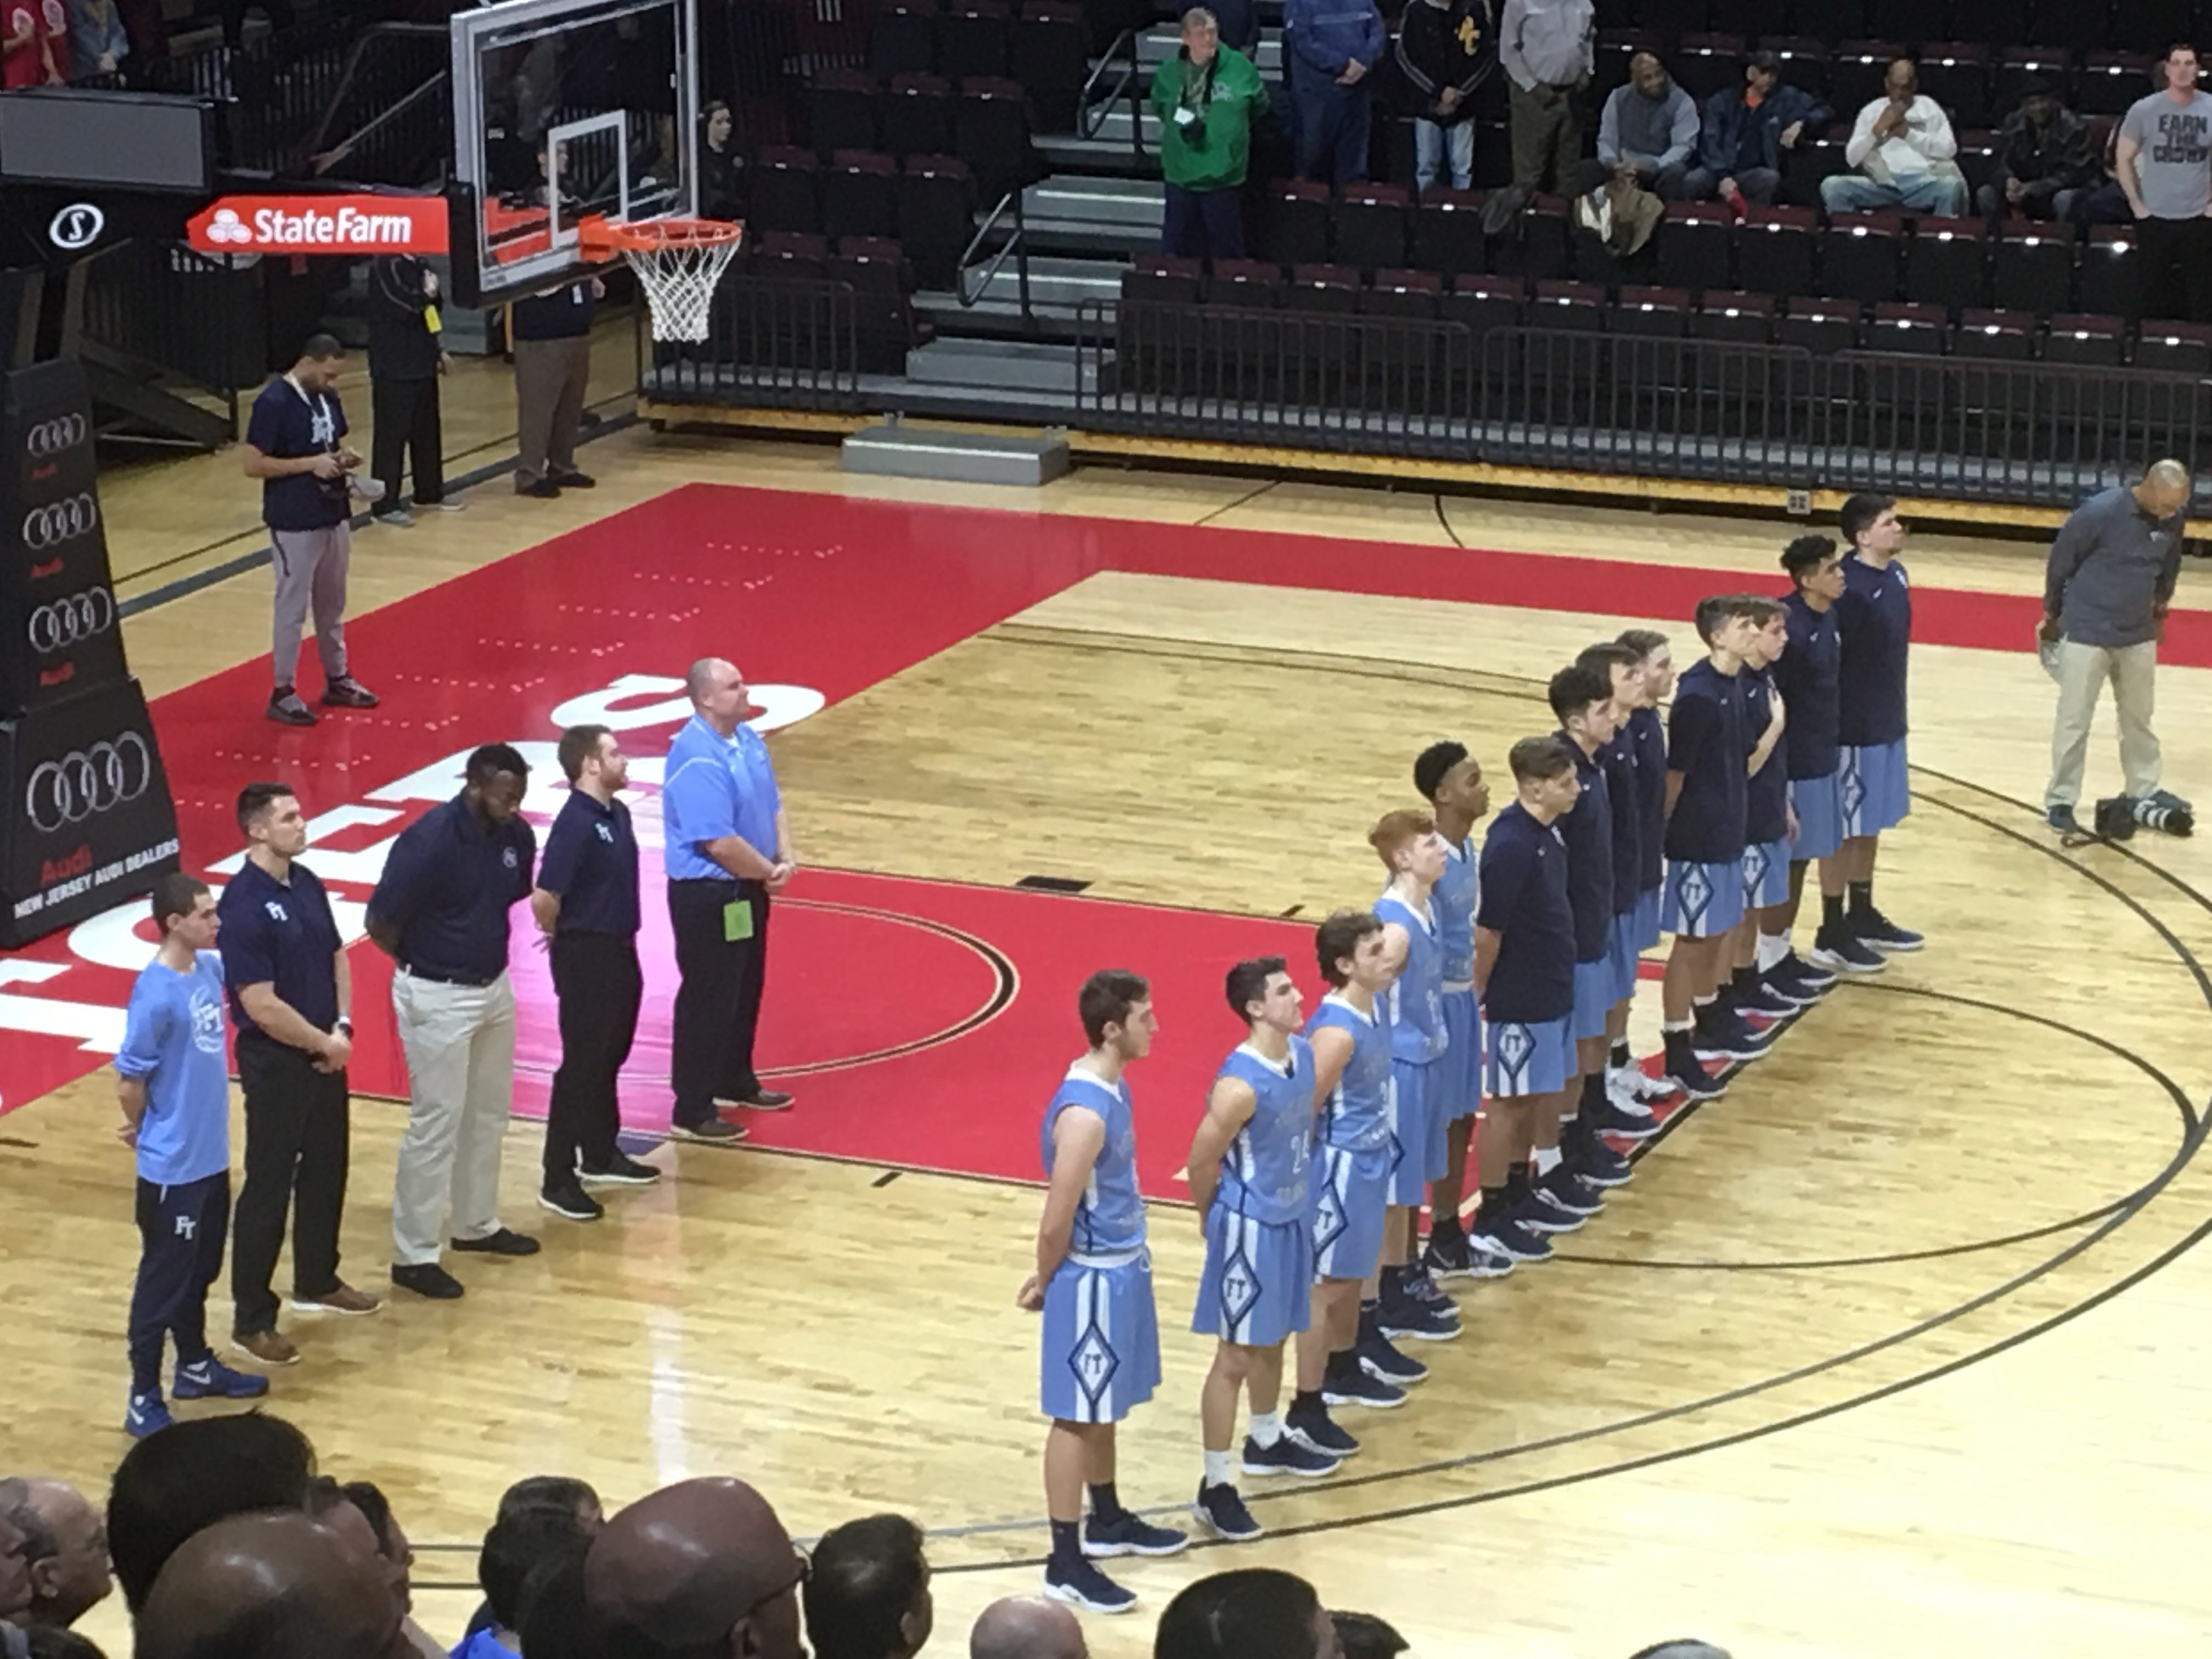 The Freehold Township boys basketball team and coaching staff observes the national anthem before the start of the Group IV State at Rutgers University on March 10, 2019